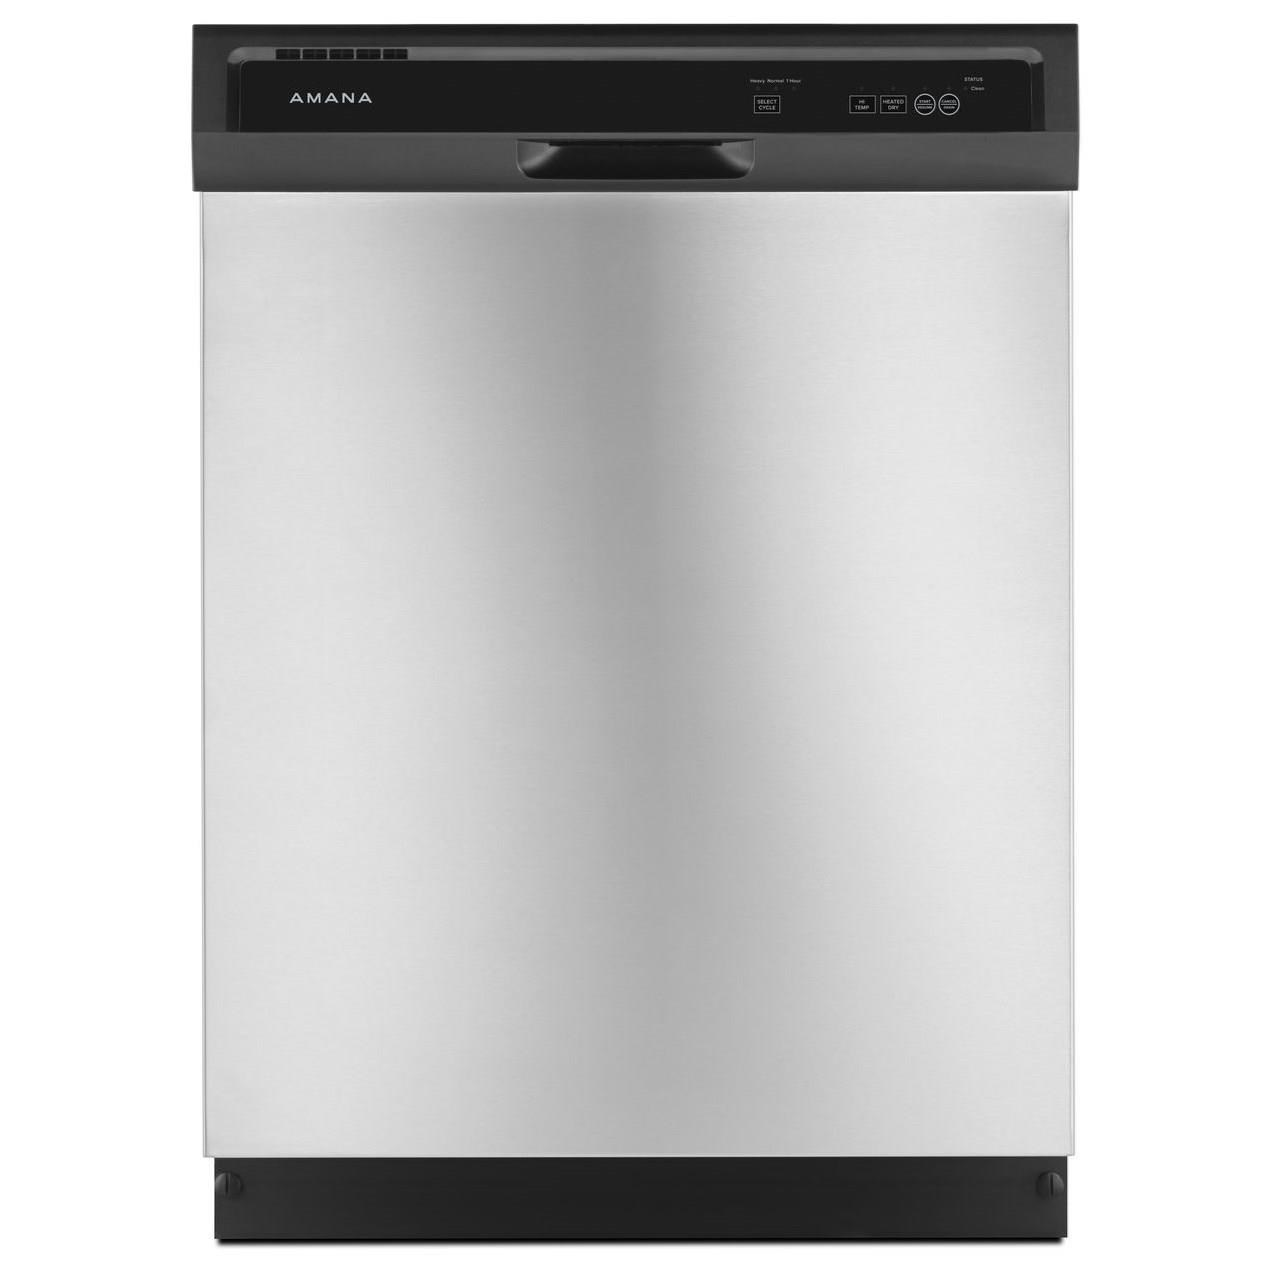 Amana Built-In Dishwashers Amana® Dishwasher with Triple Filter Wash Sy - Item Number: ADB1300AFS